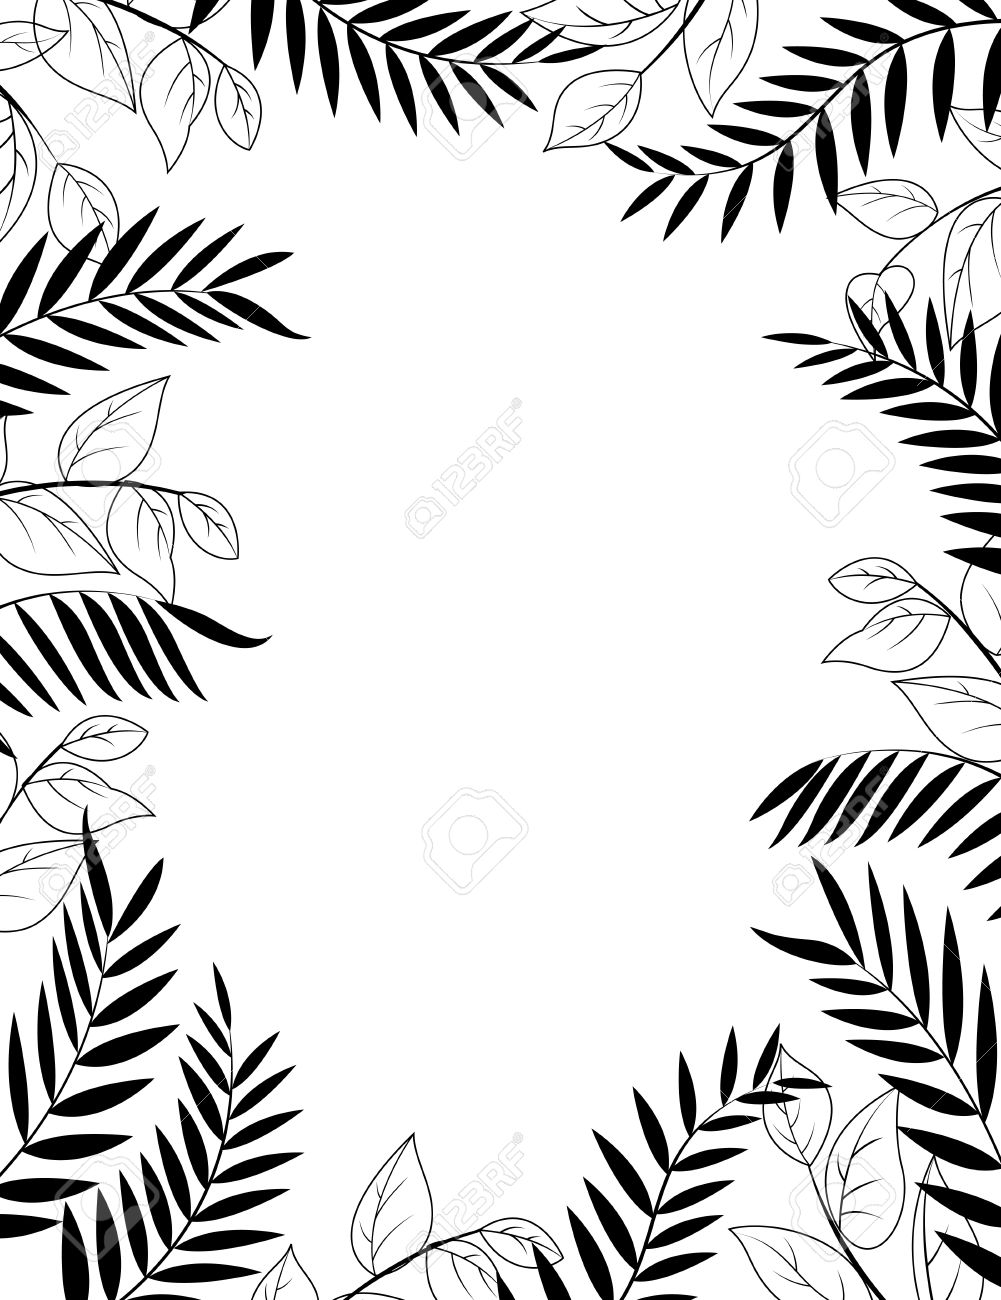 jungle background clipart black and white - Clipground